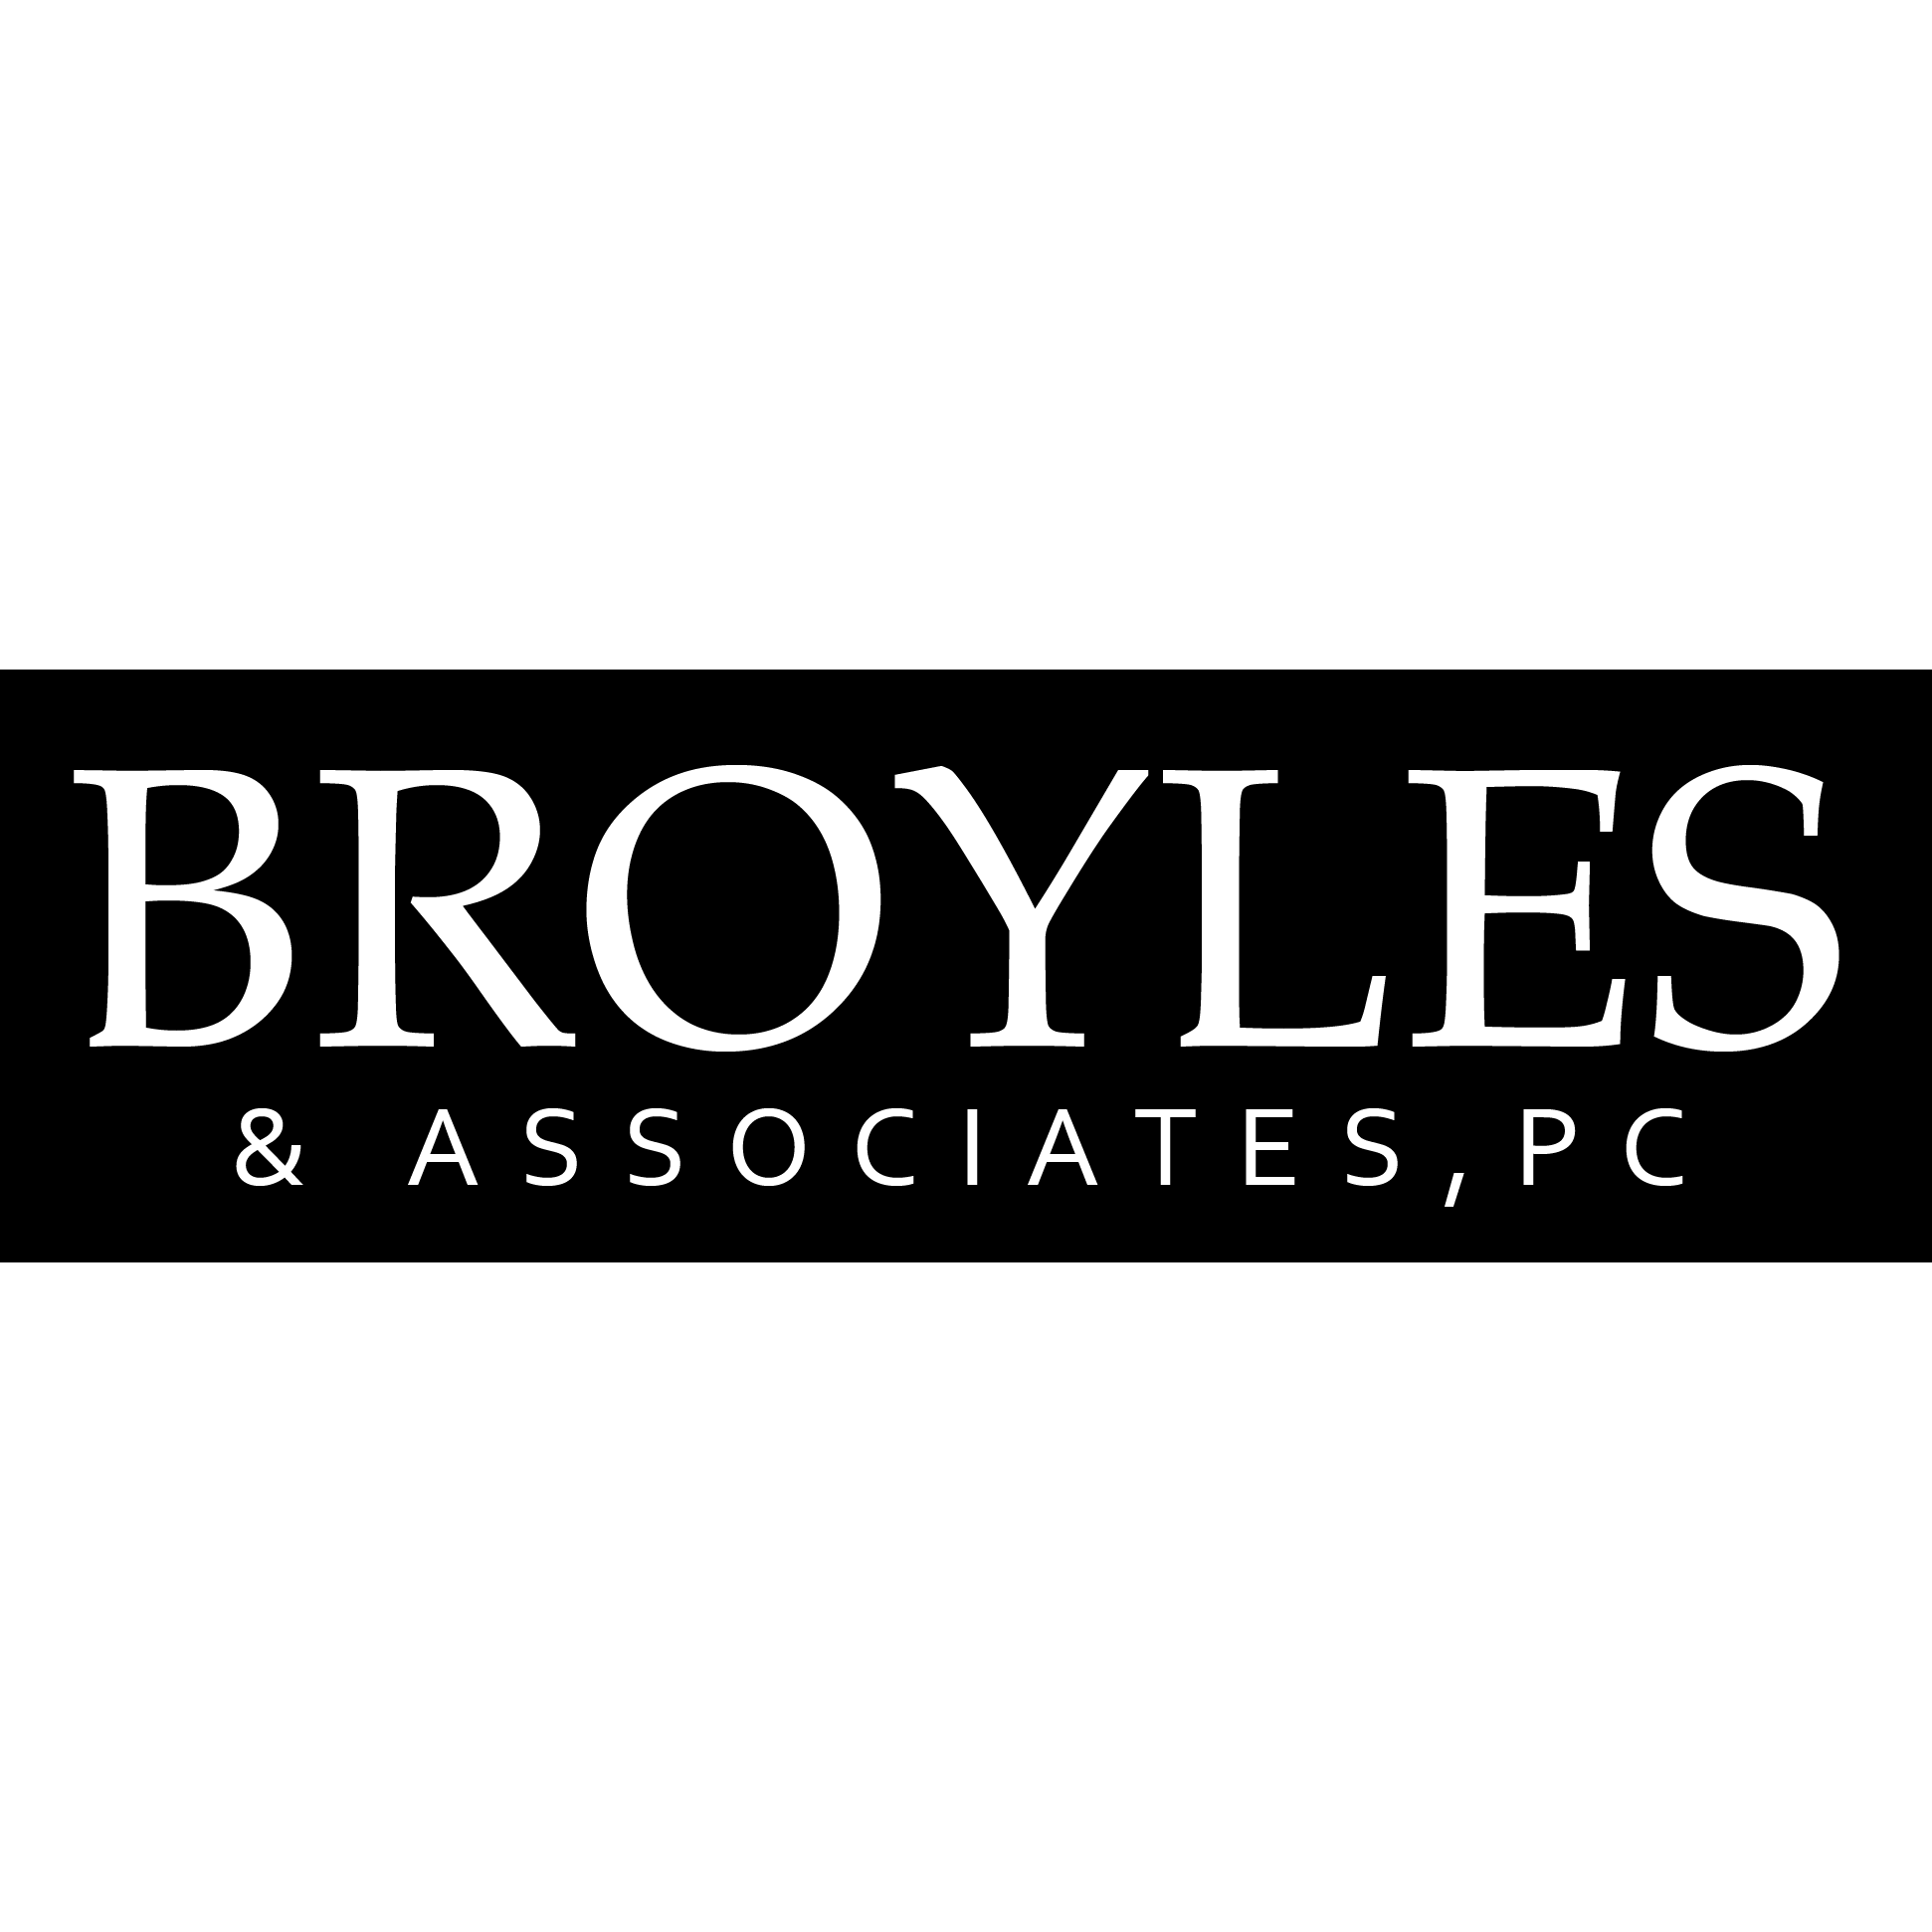 image of Broyles & Associates, PC